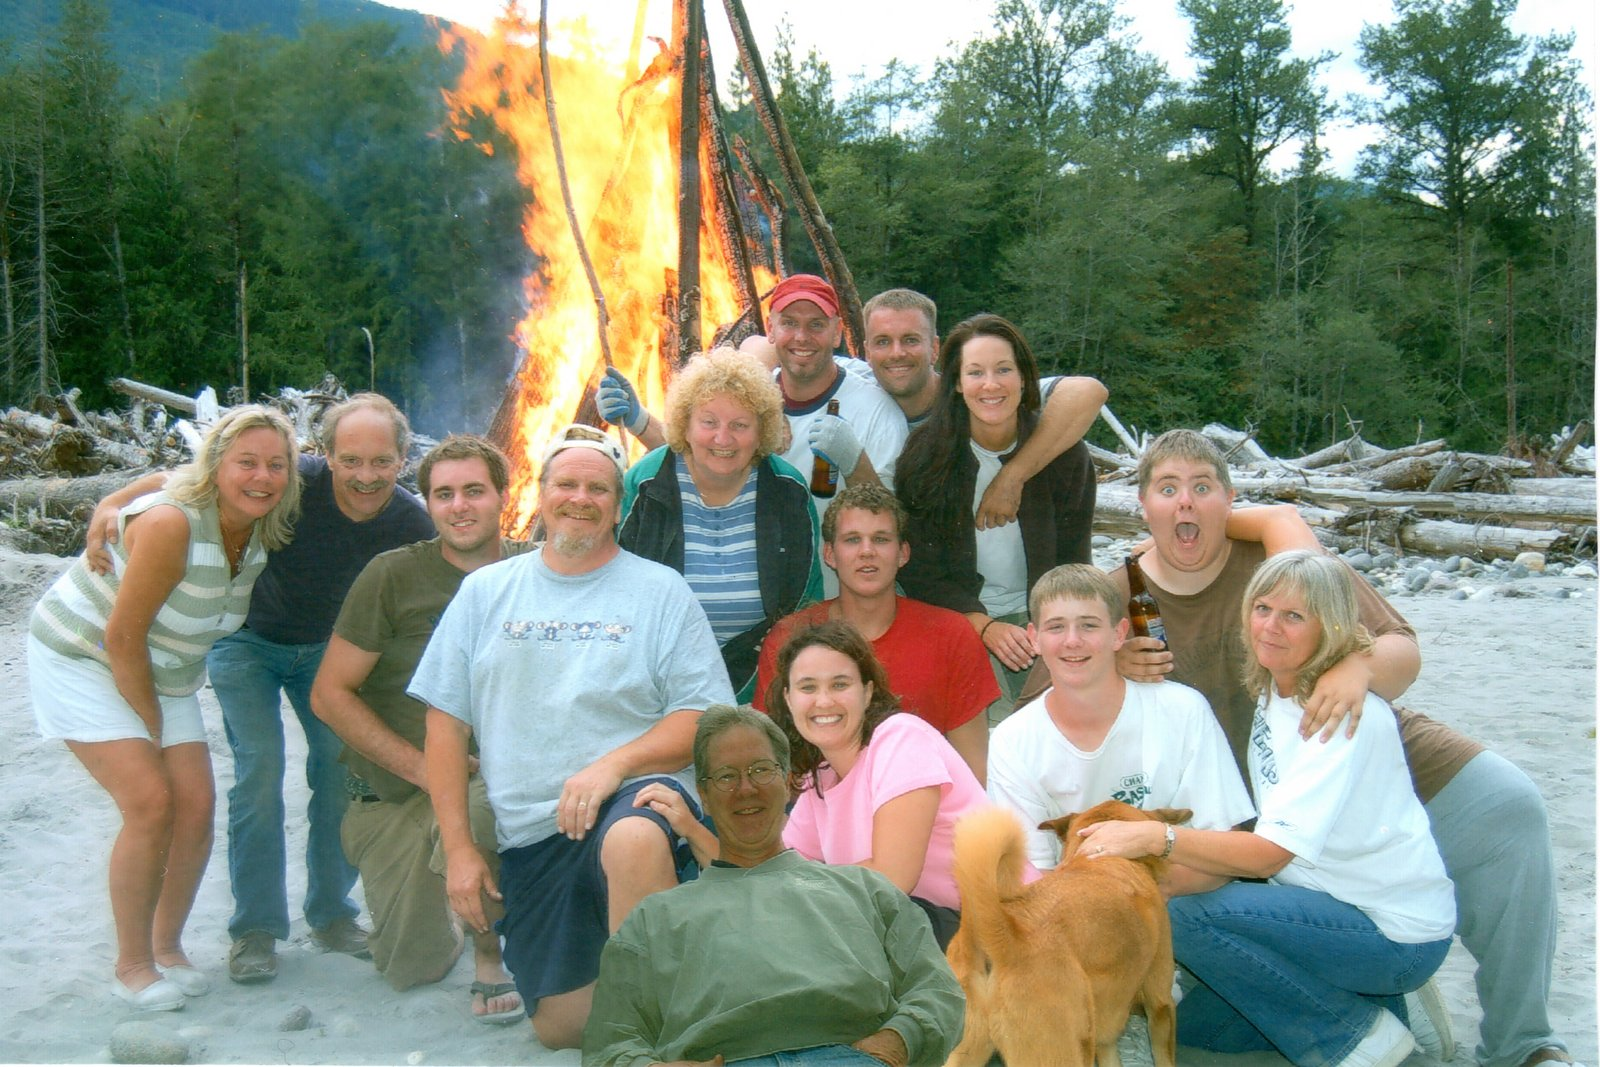 Linda at a bonfire with her friends and family